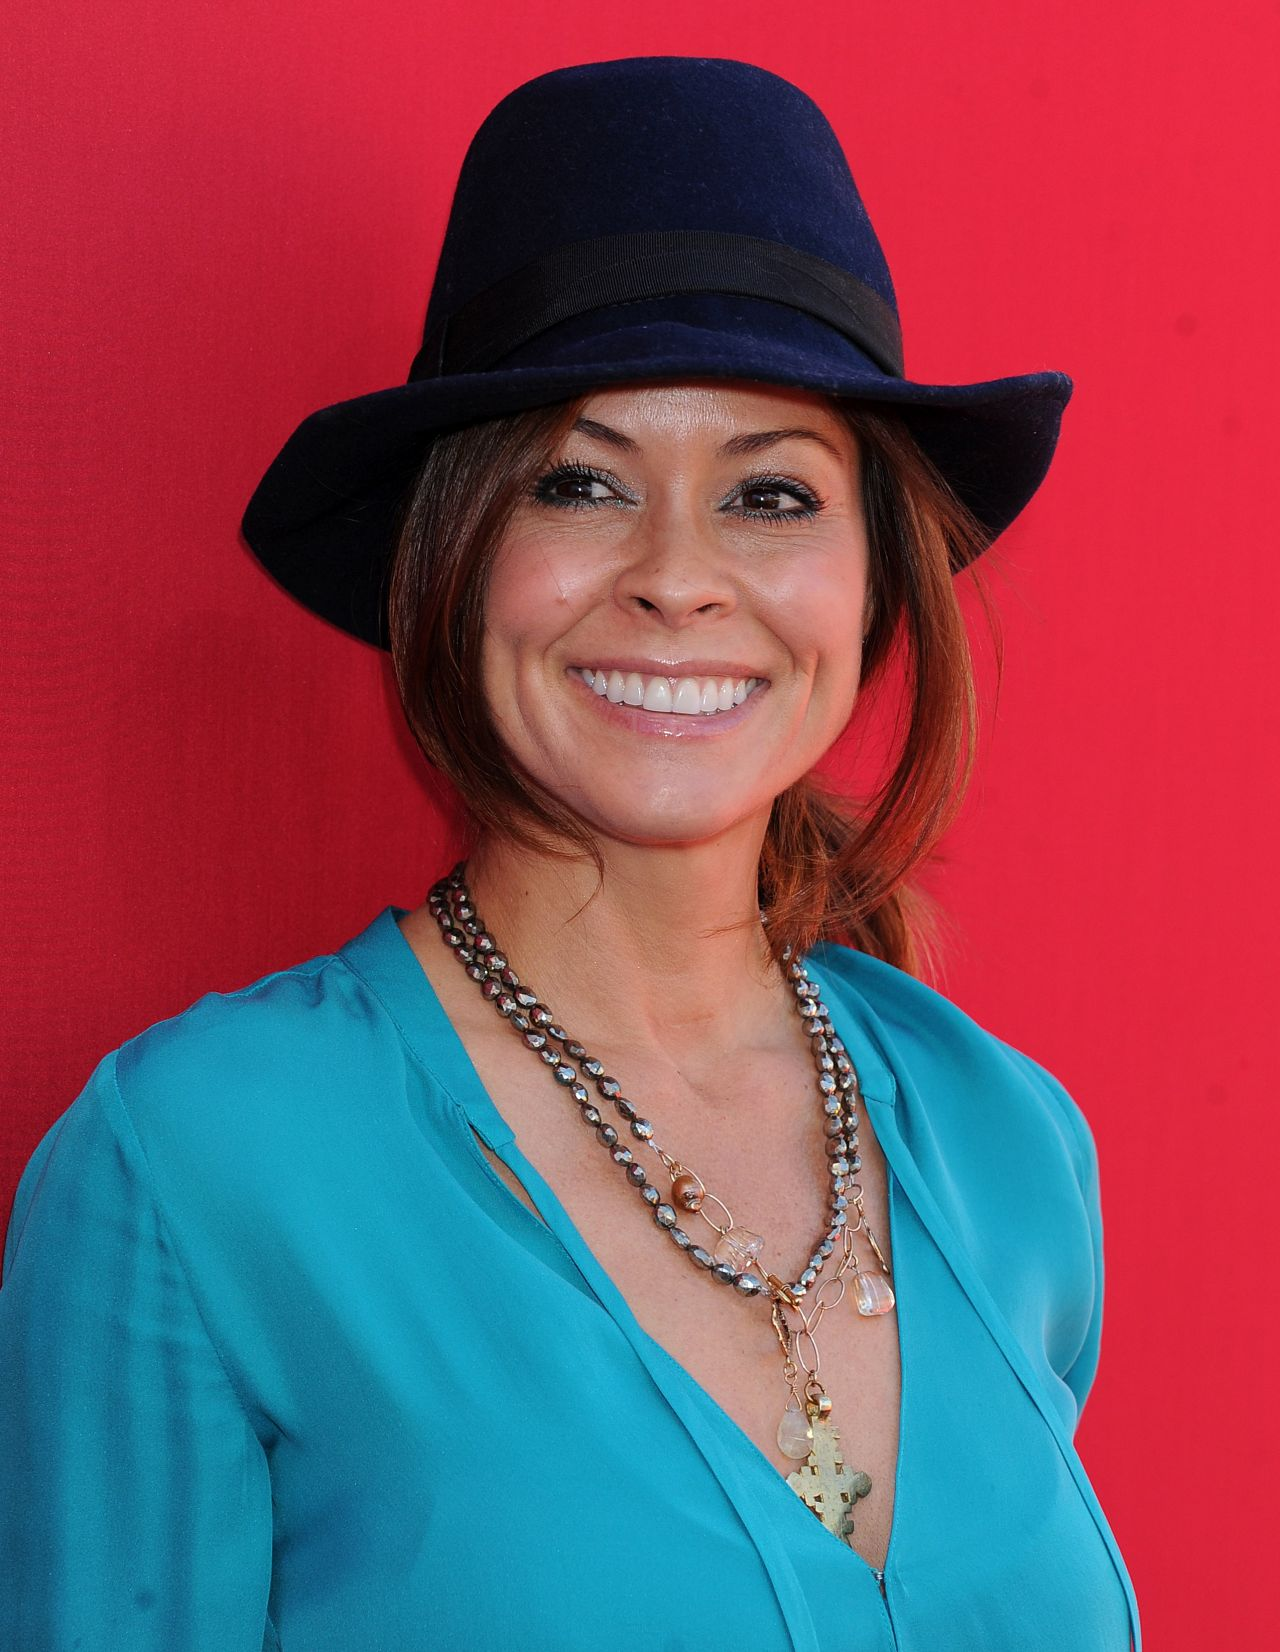 Brooke Burke - THE LEGO MOVIE Premiere in Los Angeles